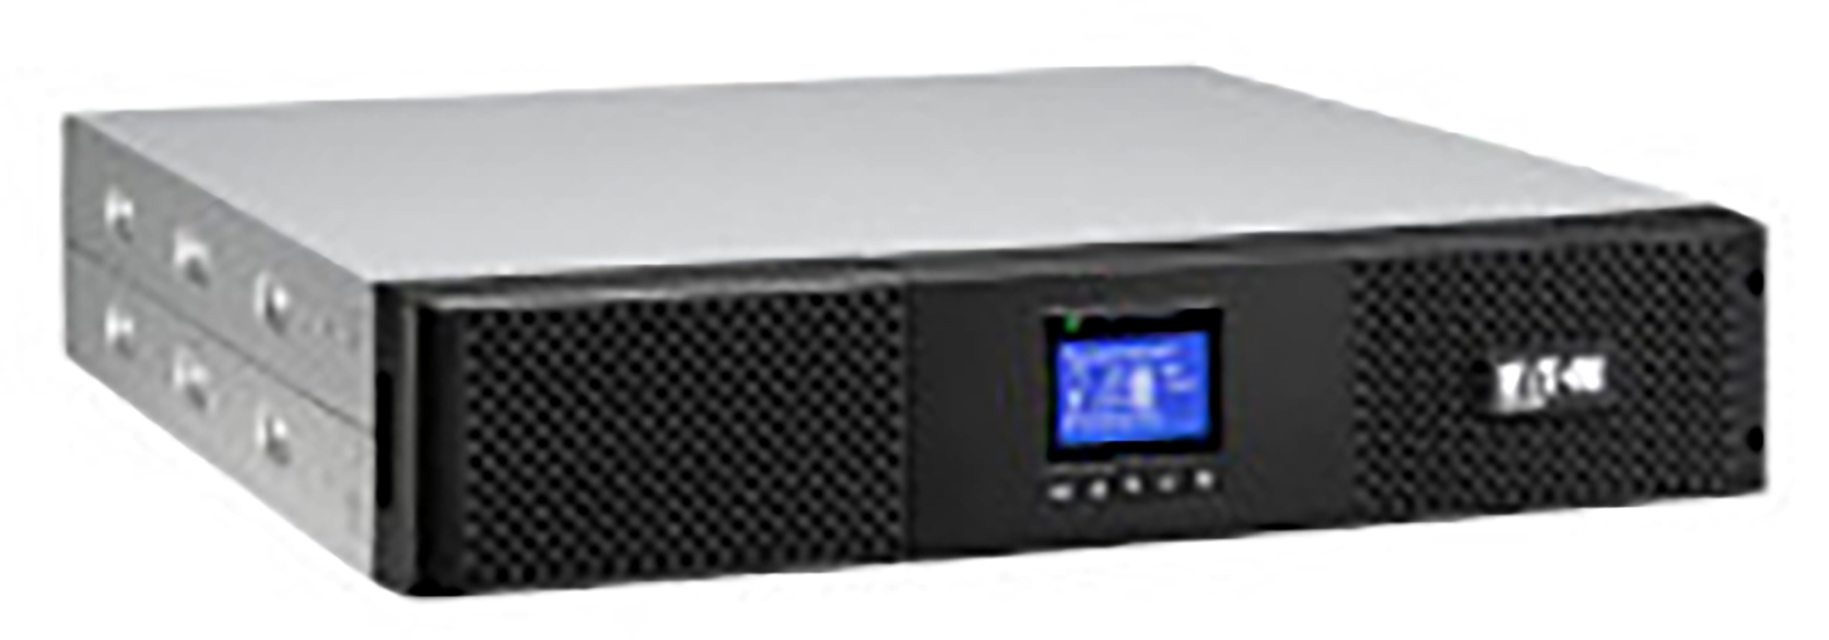 EATON UPS 9SX 2000VA, On-line, Rack 2U, 2000VA/1800W, výstup 8x IEC C13, USB, displej, sinus